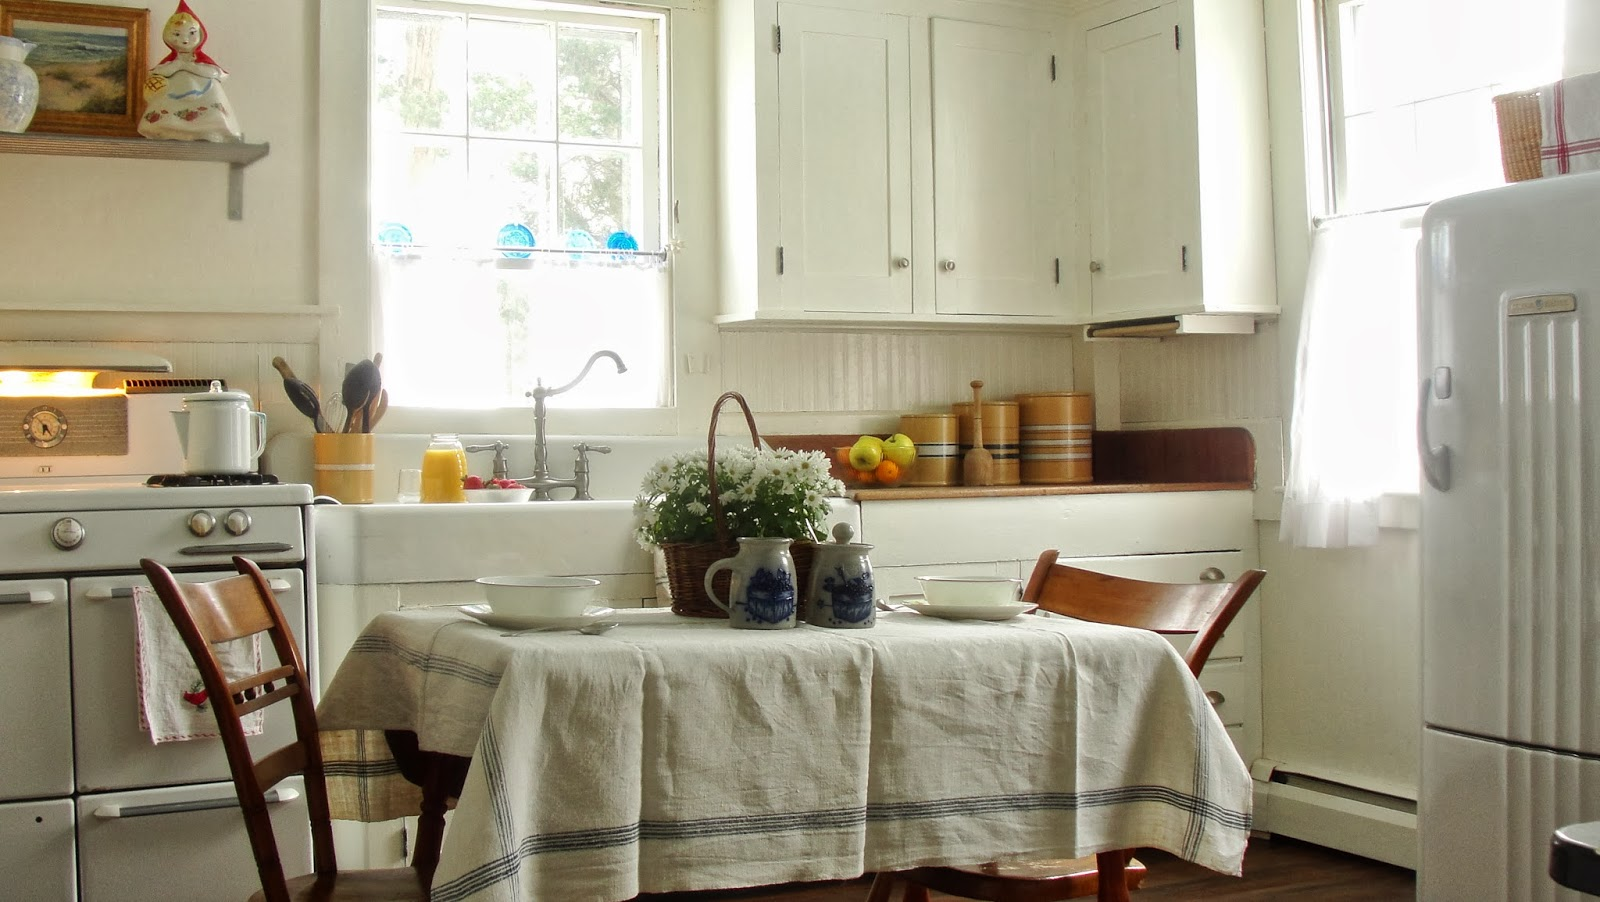 Cape cod historic homes blog if you can 39 t beat em - Cape cod house interior ...